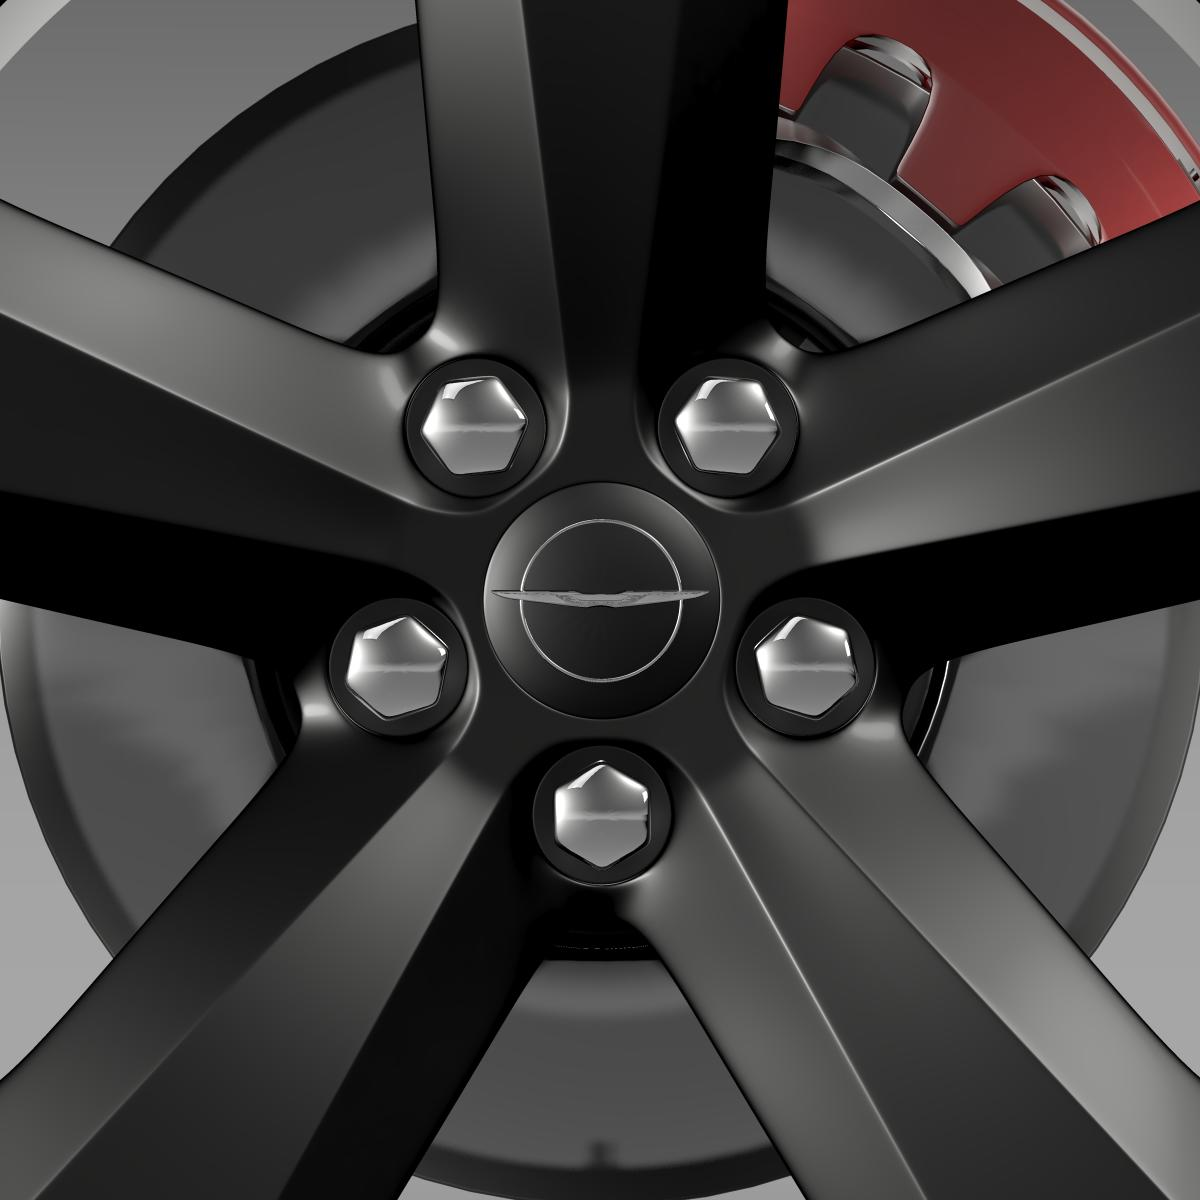 chrysler 300s wheel 3d model 3ds max fbx c4d lwo ma mb hrc xsi obj 210672